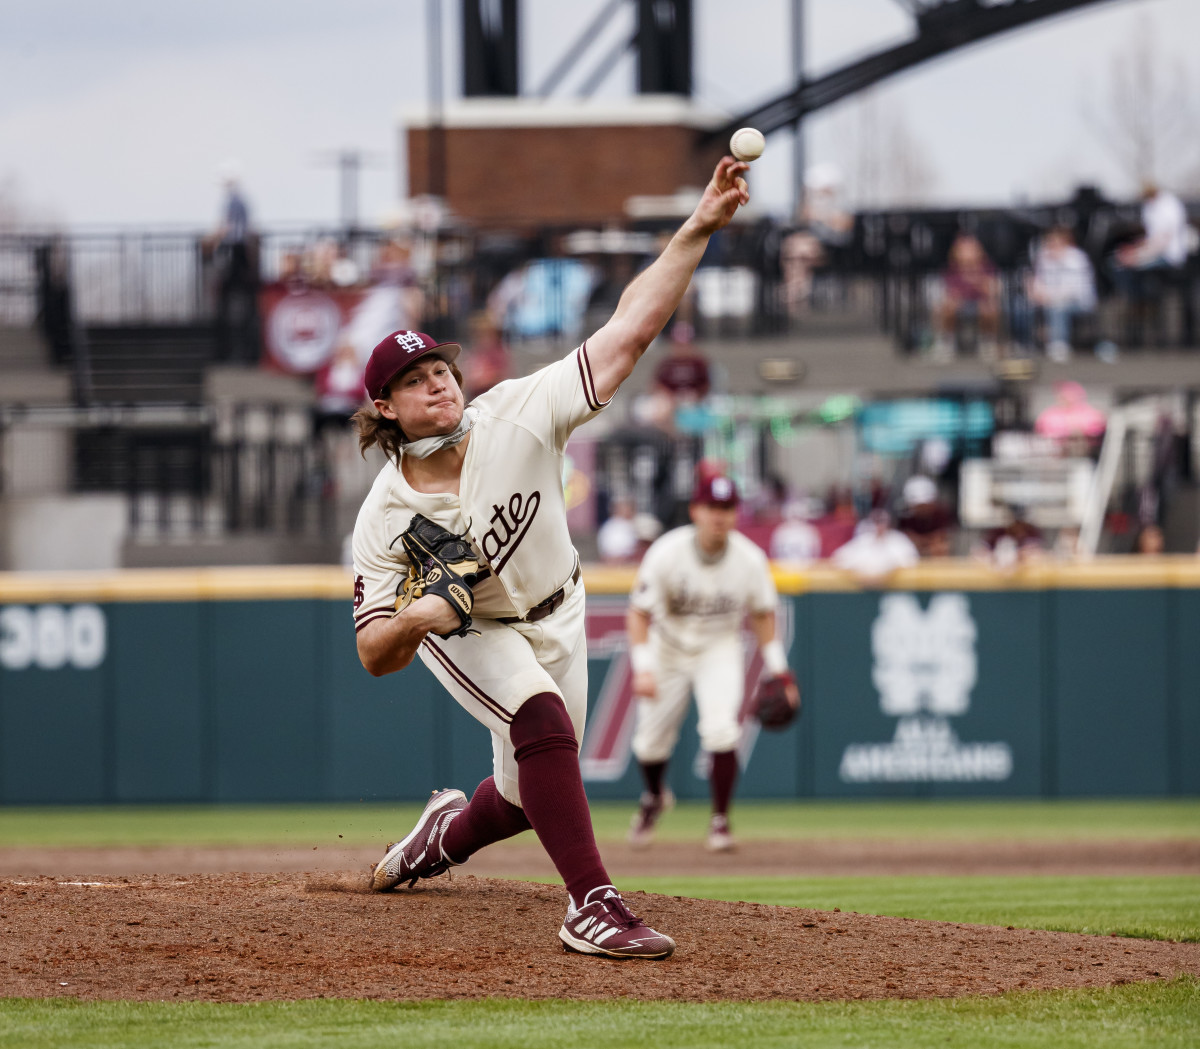 Mississippi State's Houston Harding is a candidate to start for the Bulldogs on Saturday. (Photo courtesy of Mississippi State athletics)